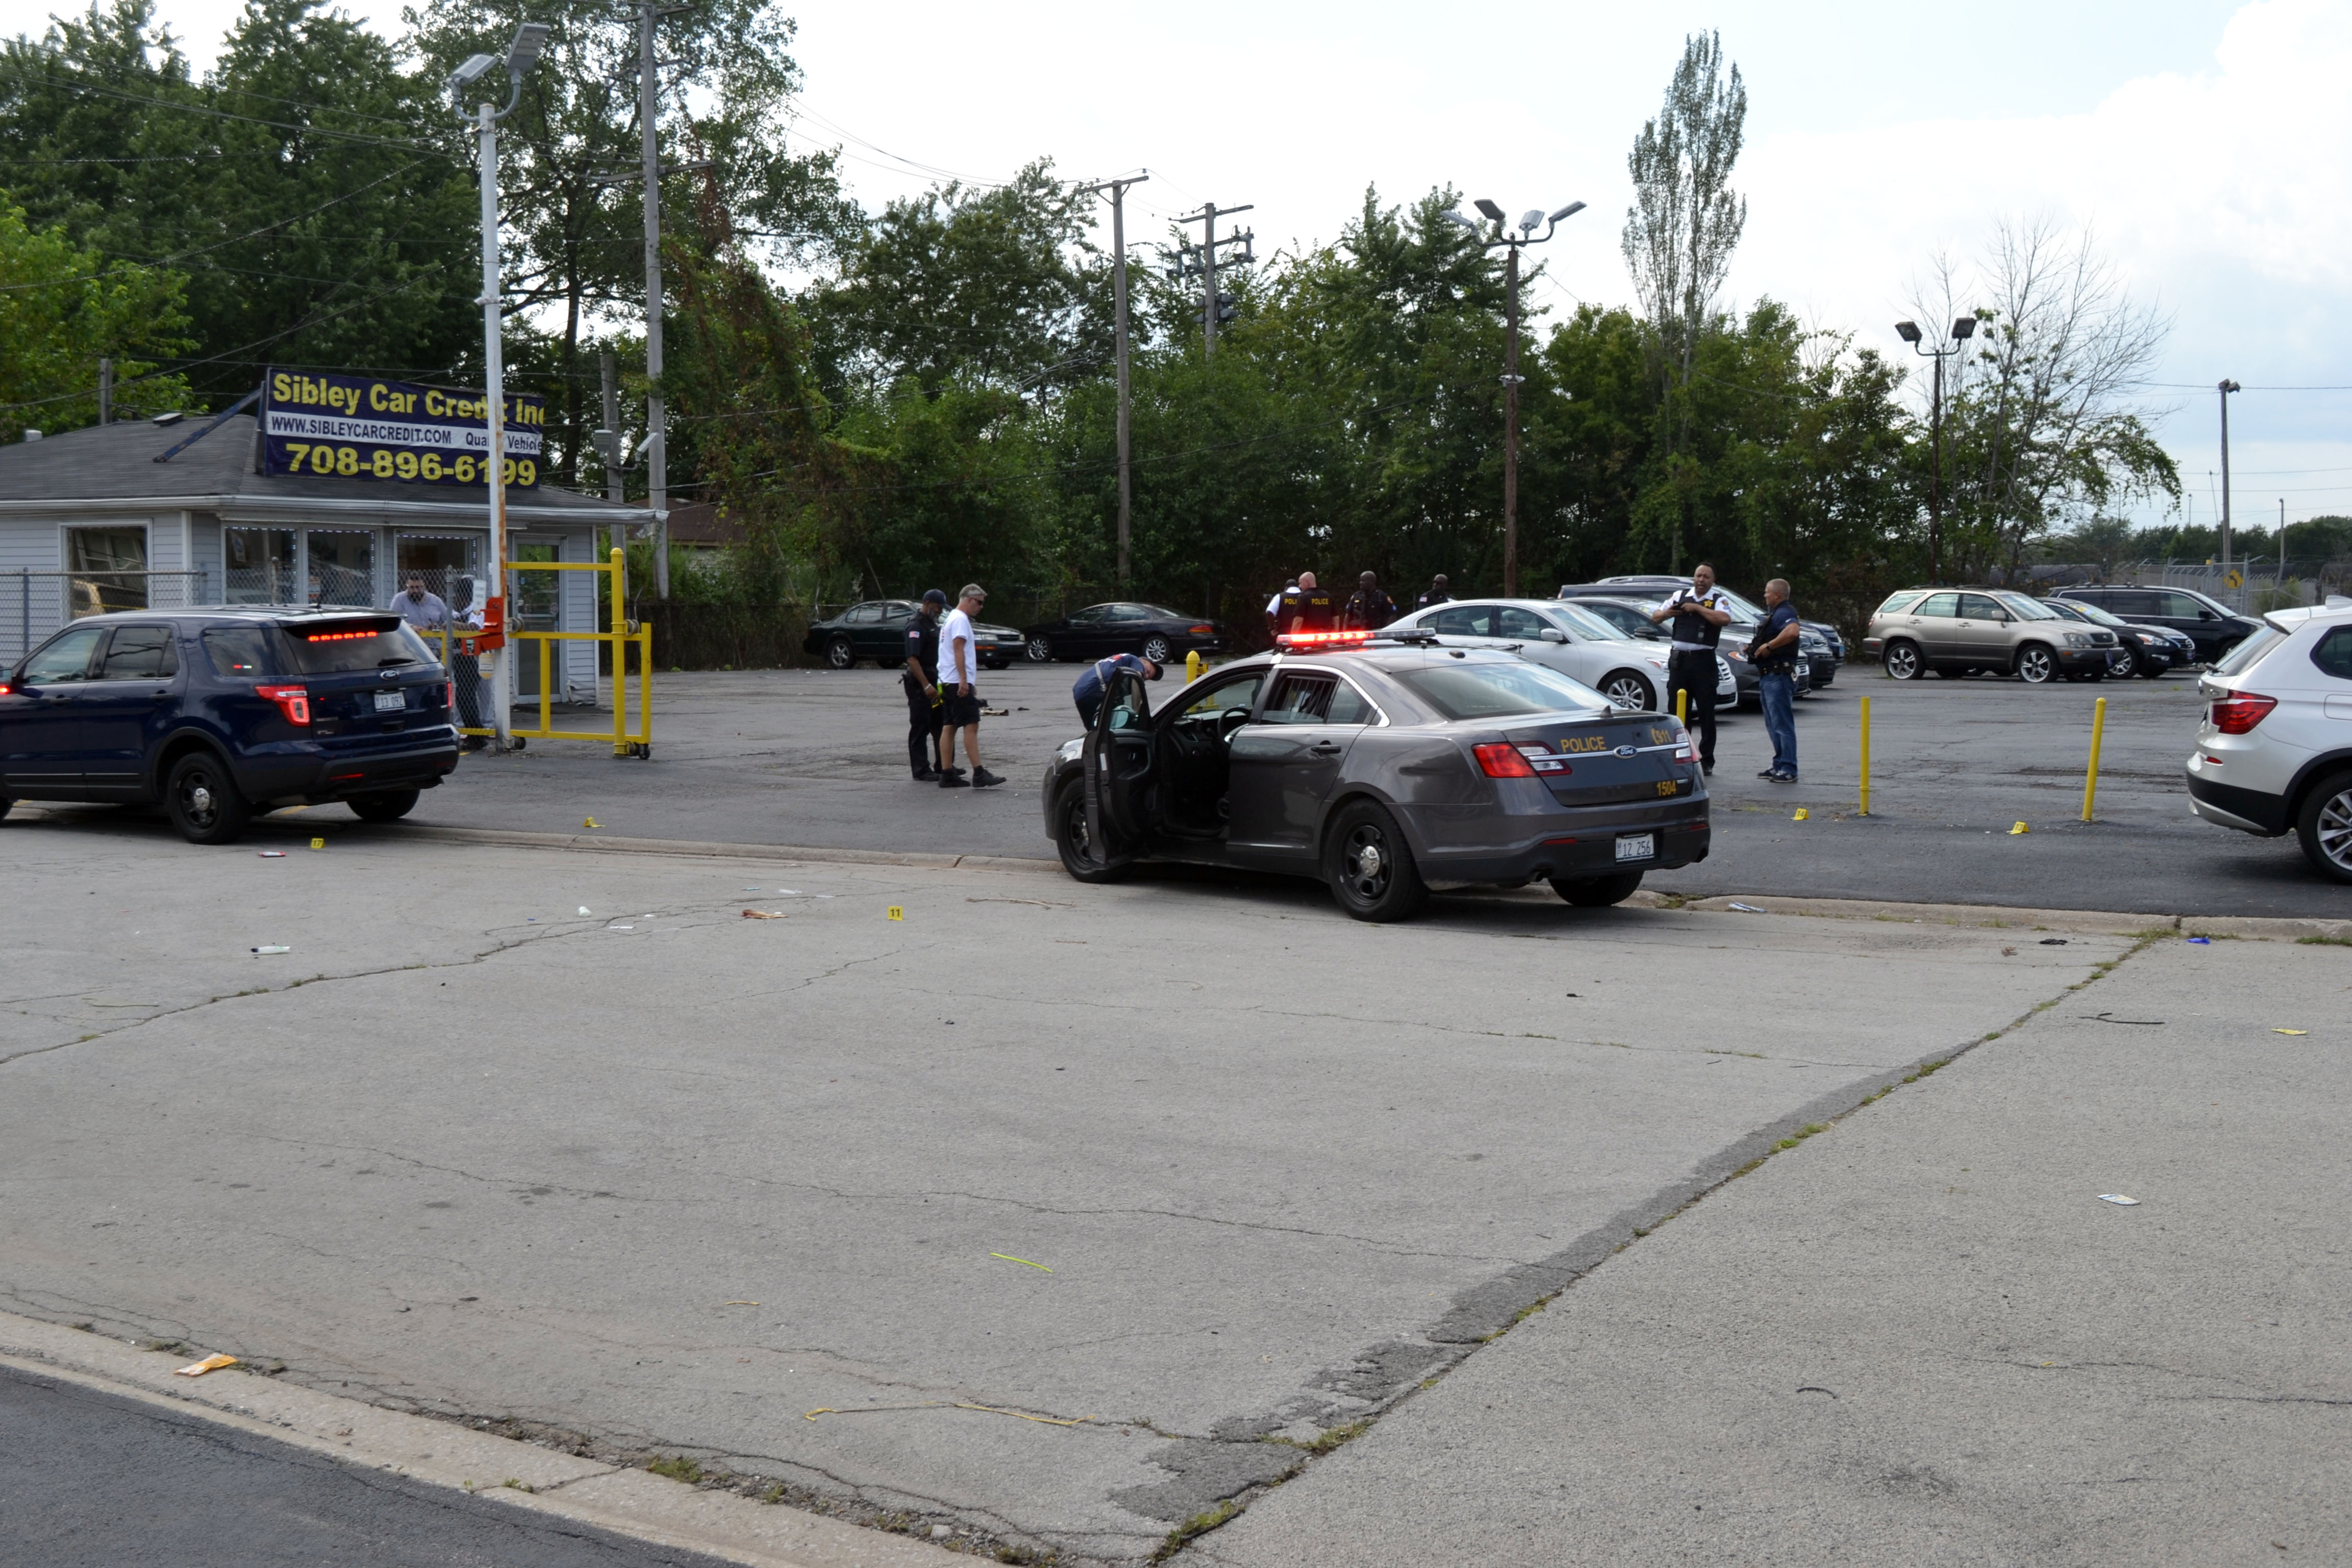 Authorities are investigating reports of a shooting involving a police officer Aug. 19, 2019, near Chicago Road and Sibley Boulevard in Dolton.